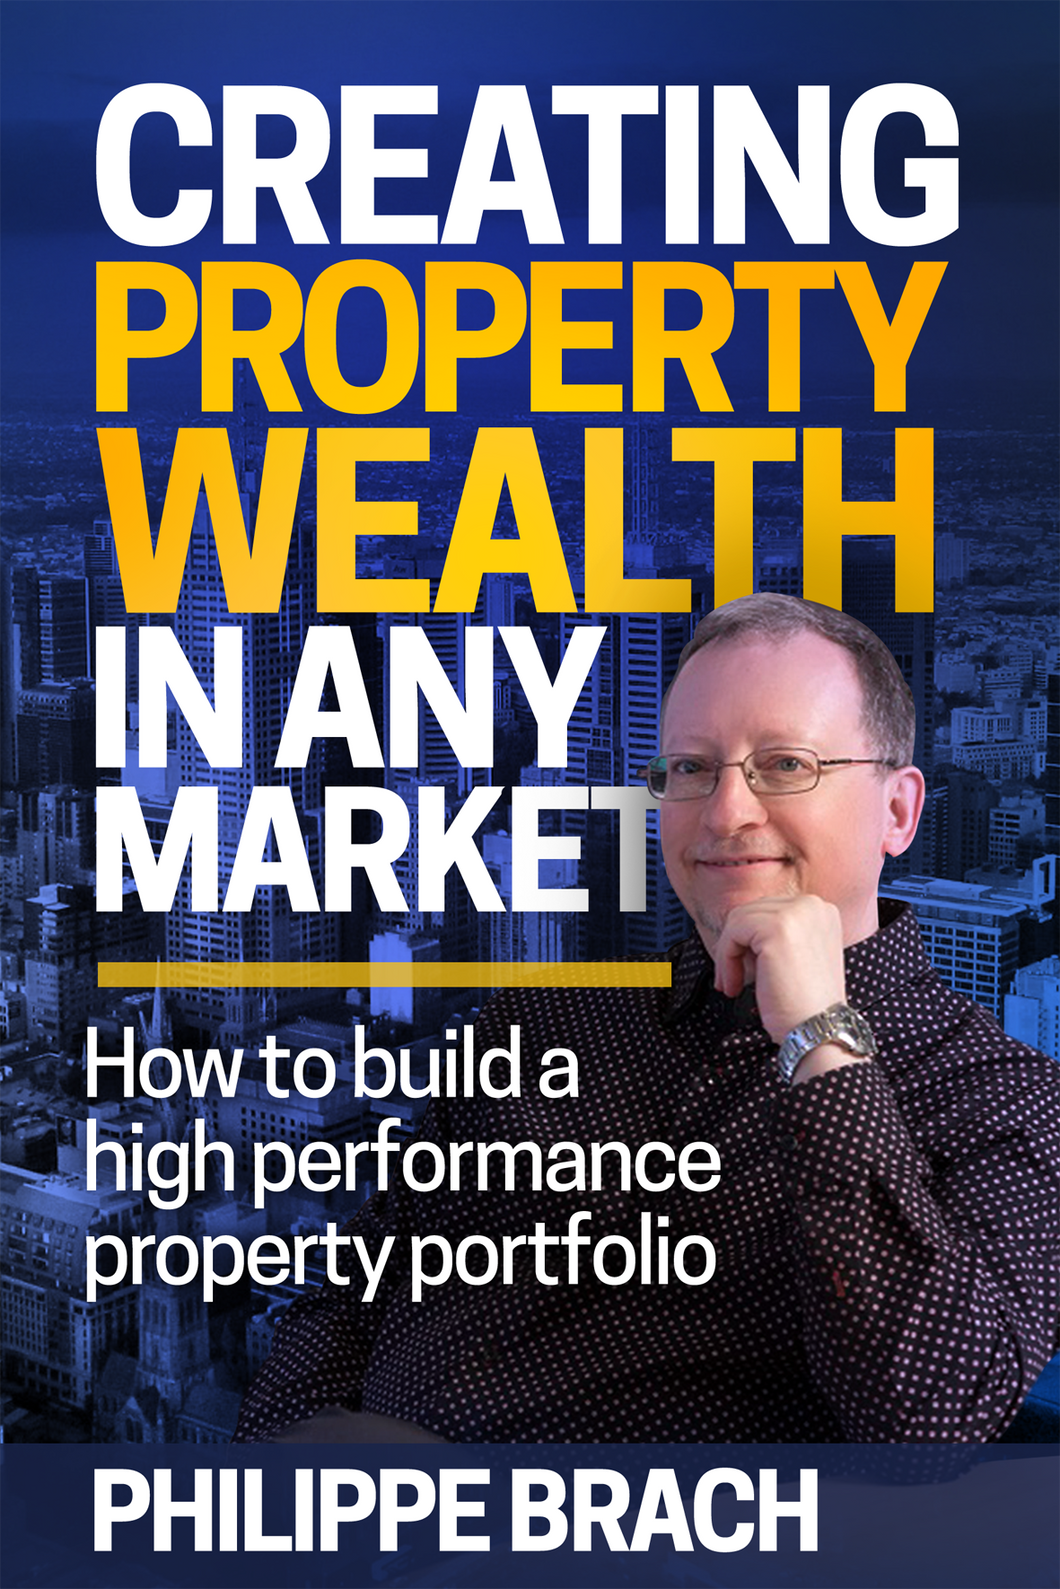 Property book cover for Creating Property Wealth in any Market by Philippe Brach